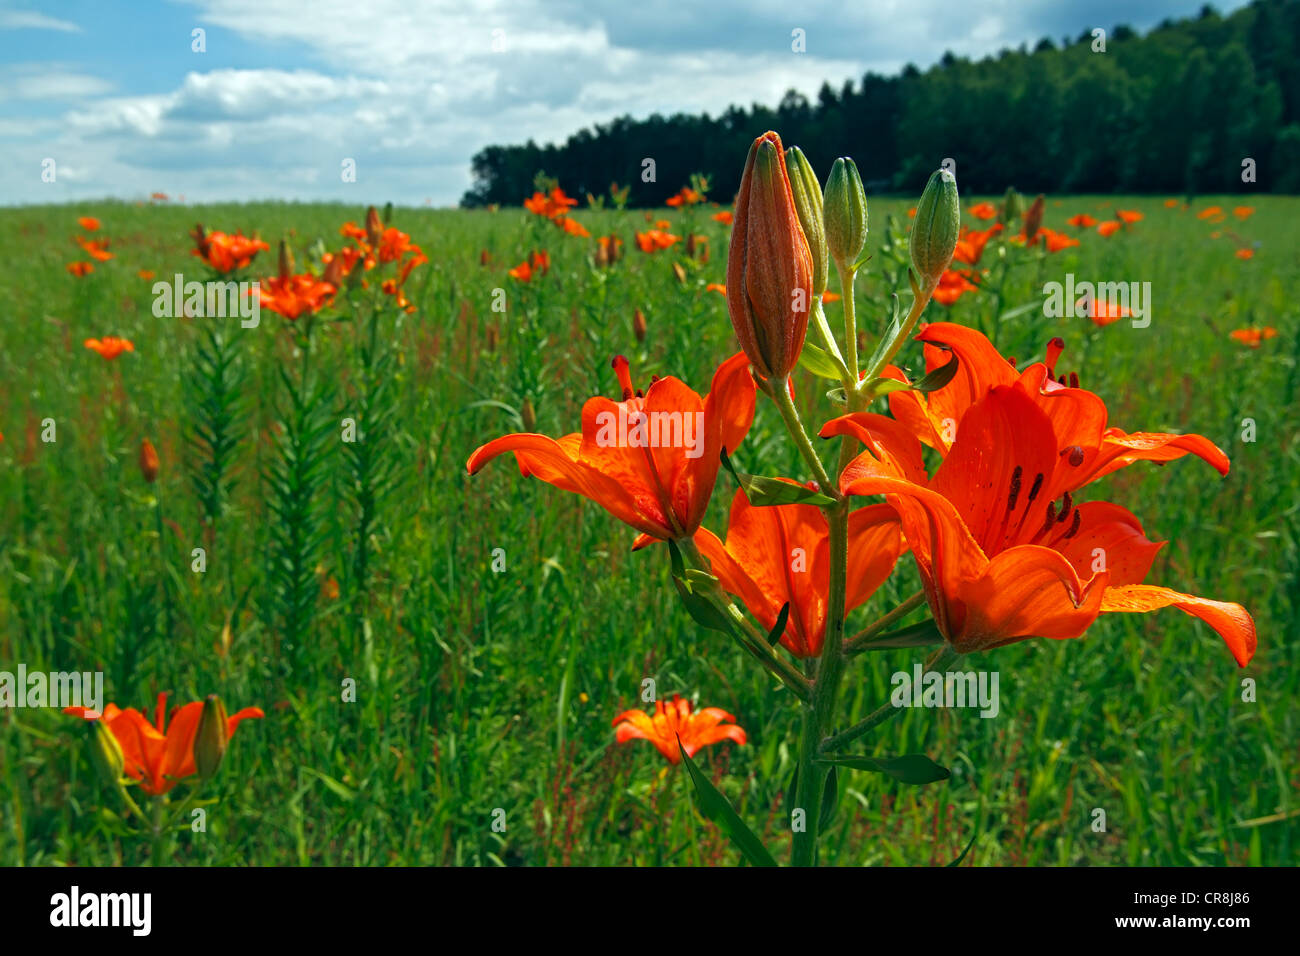 Flowering Orange Lilies or Fire Lilies (Lilium bulbiferum) along the field lily path of Govelin, Goehrde, Wendland - Stock Image